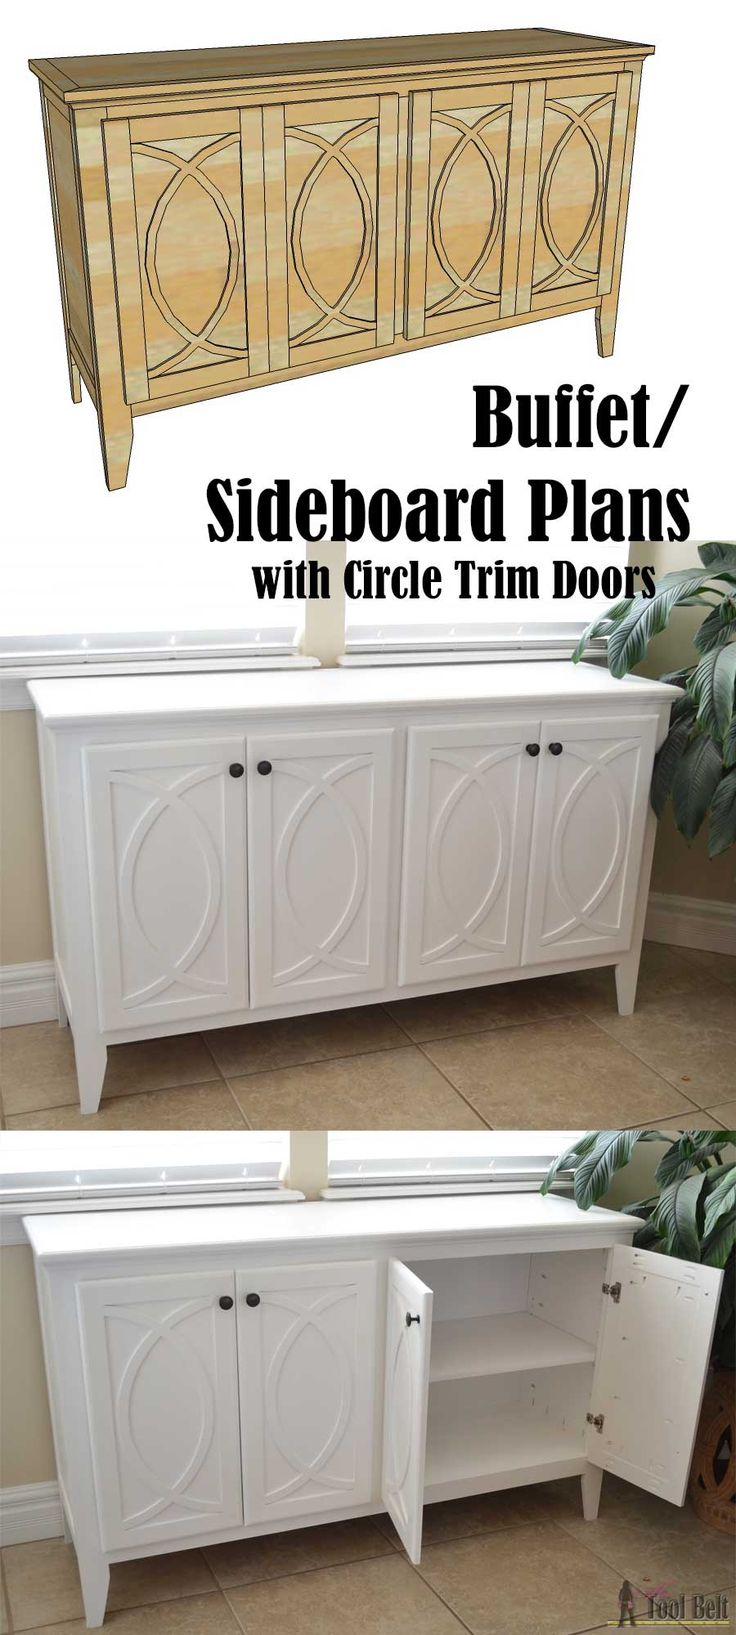 DIY Buffet Or Sideboard With Circle Trim Doors. This Buffet Cabinet Boasts  Plenty Of Dining